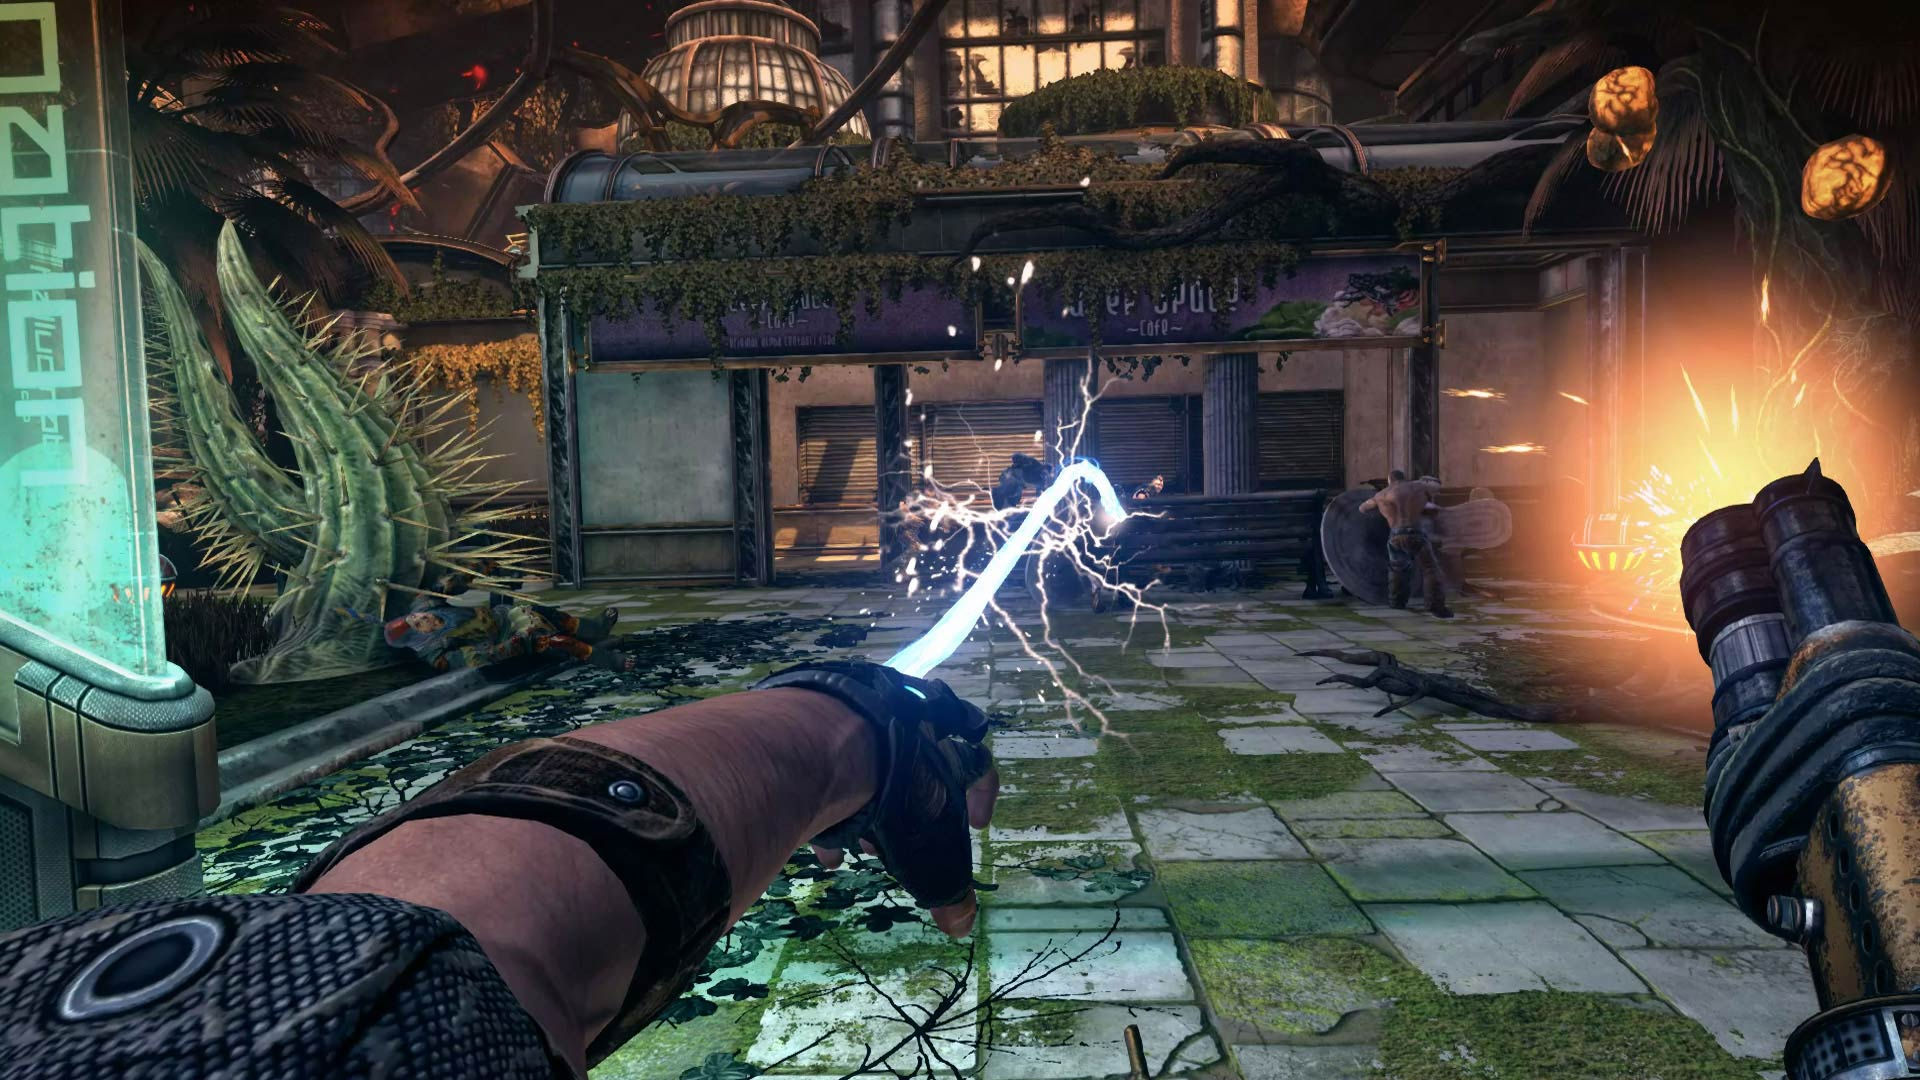 Blast Through Bulletstorm When You Need A Break From All These Rpgs